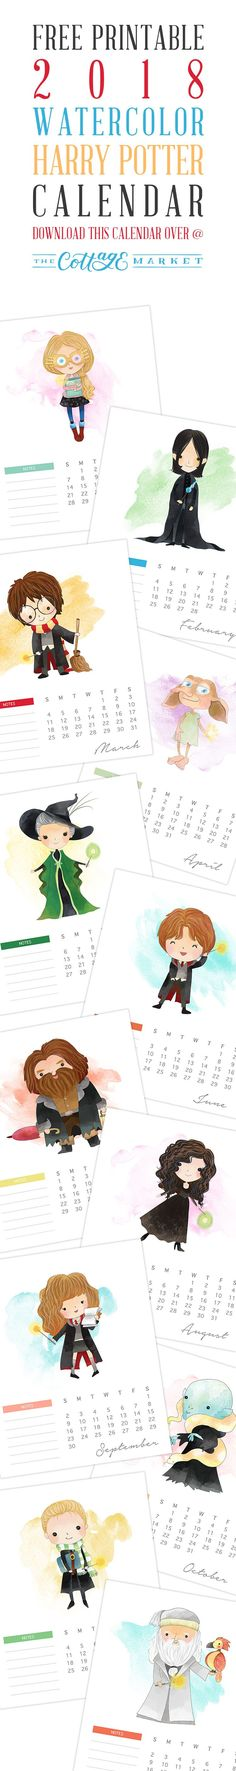 Free Printable 2018 Watercolor Harry Potter Calendar